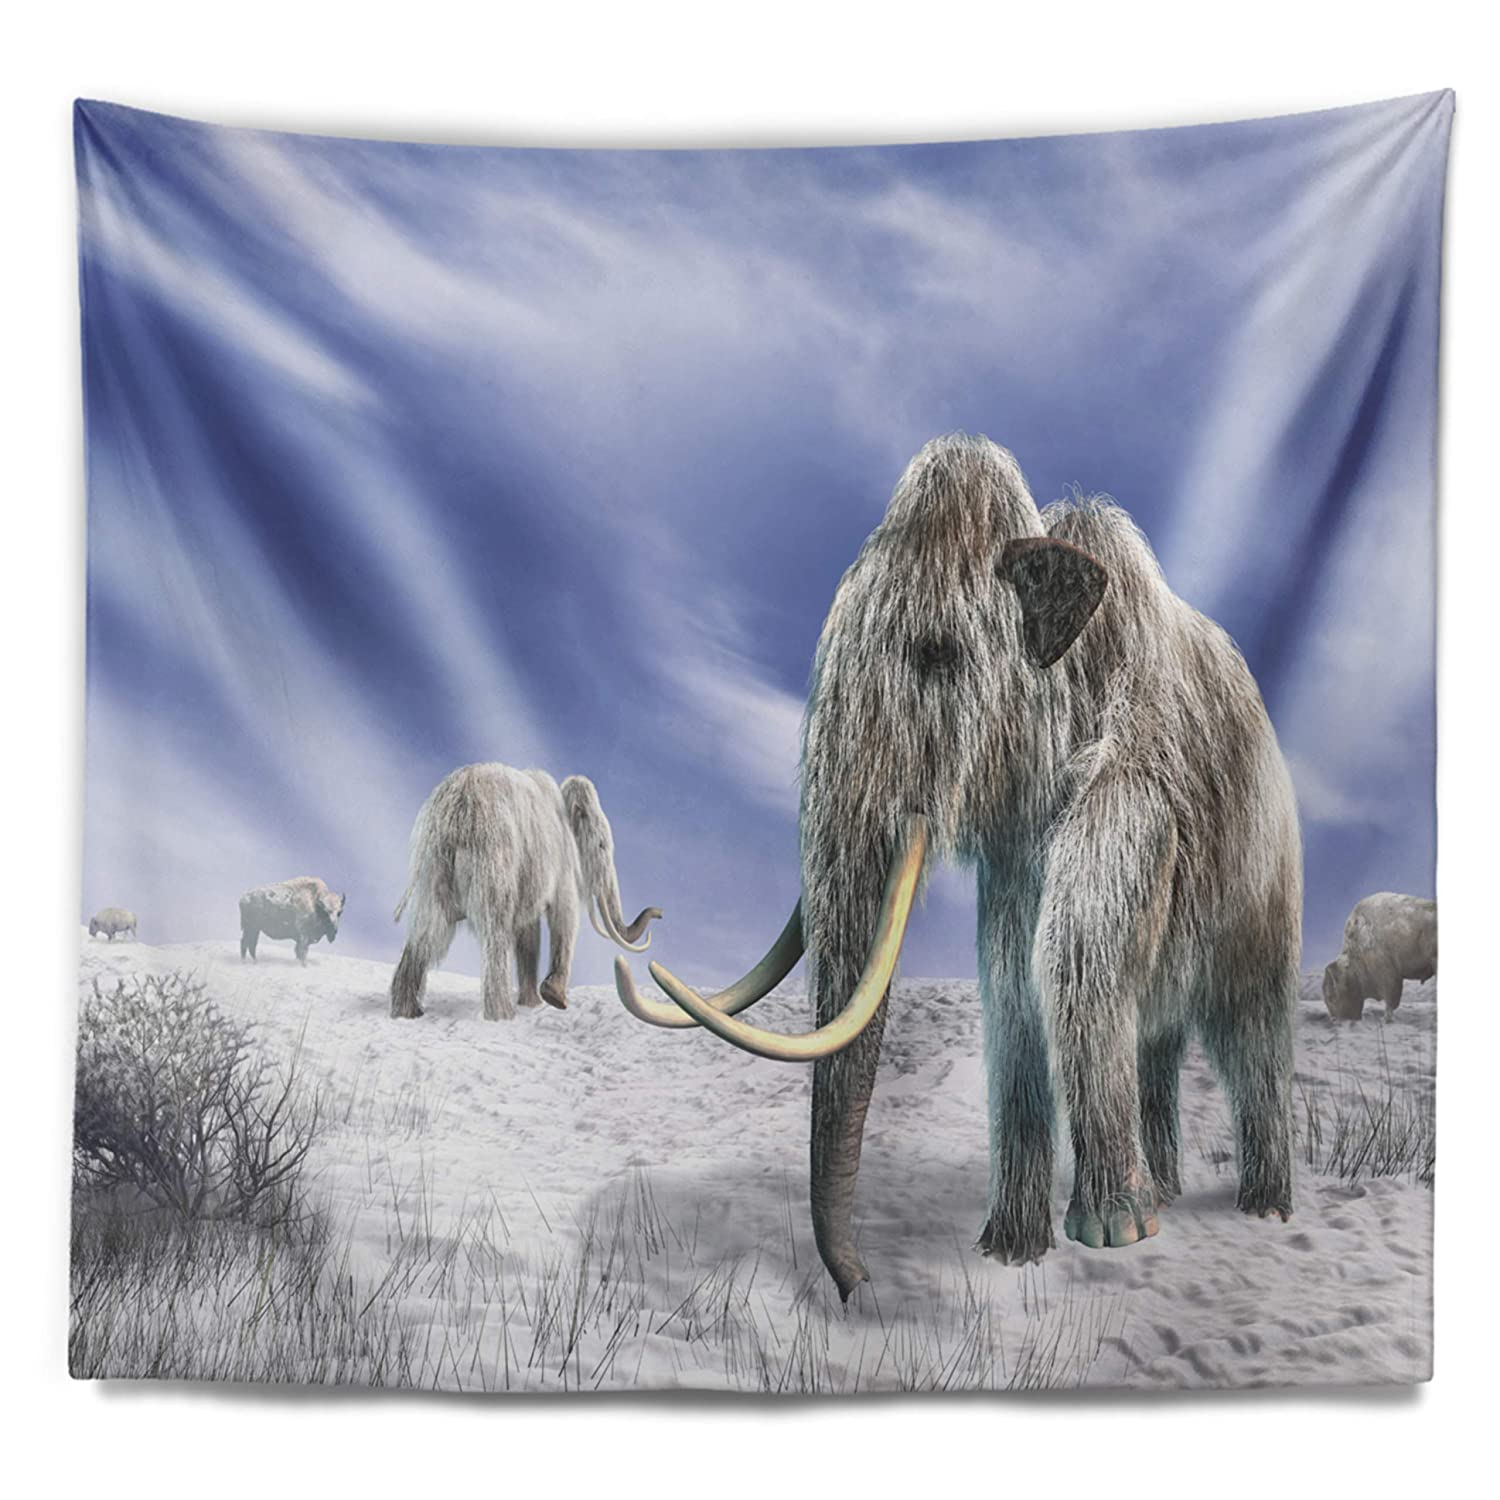 Created On Lightweight Polyester Fabric x 50 in 60 in Designart TAP9023-60-50  Mammoth Elephants in Field Landscape Photography Blanket D/écor Art for Home and Office Wall Tapestry Large